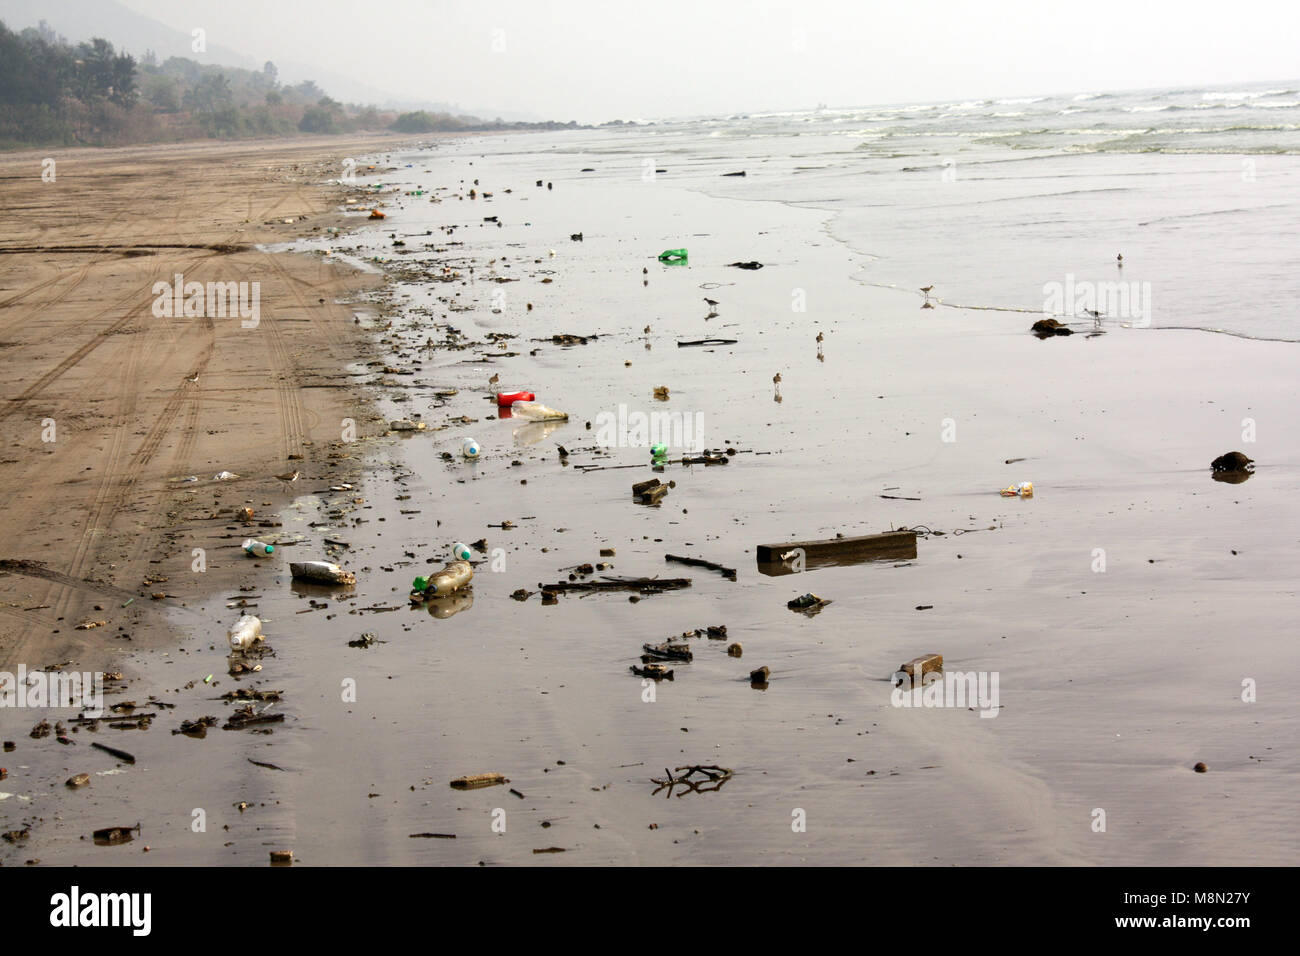 A beach which has thrown up all the tourist garbage during a high tide. - Stock Image